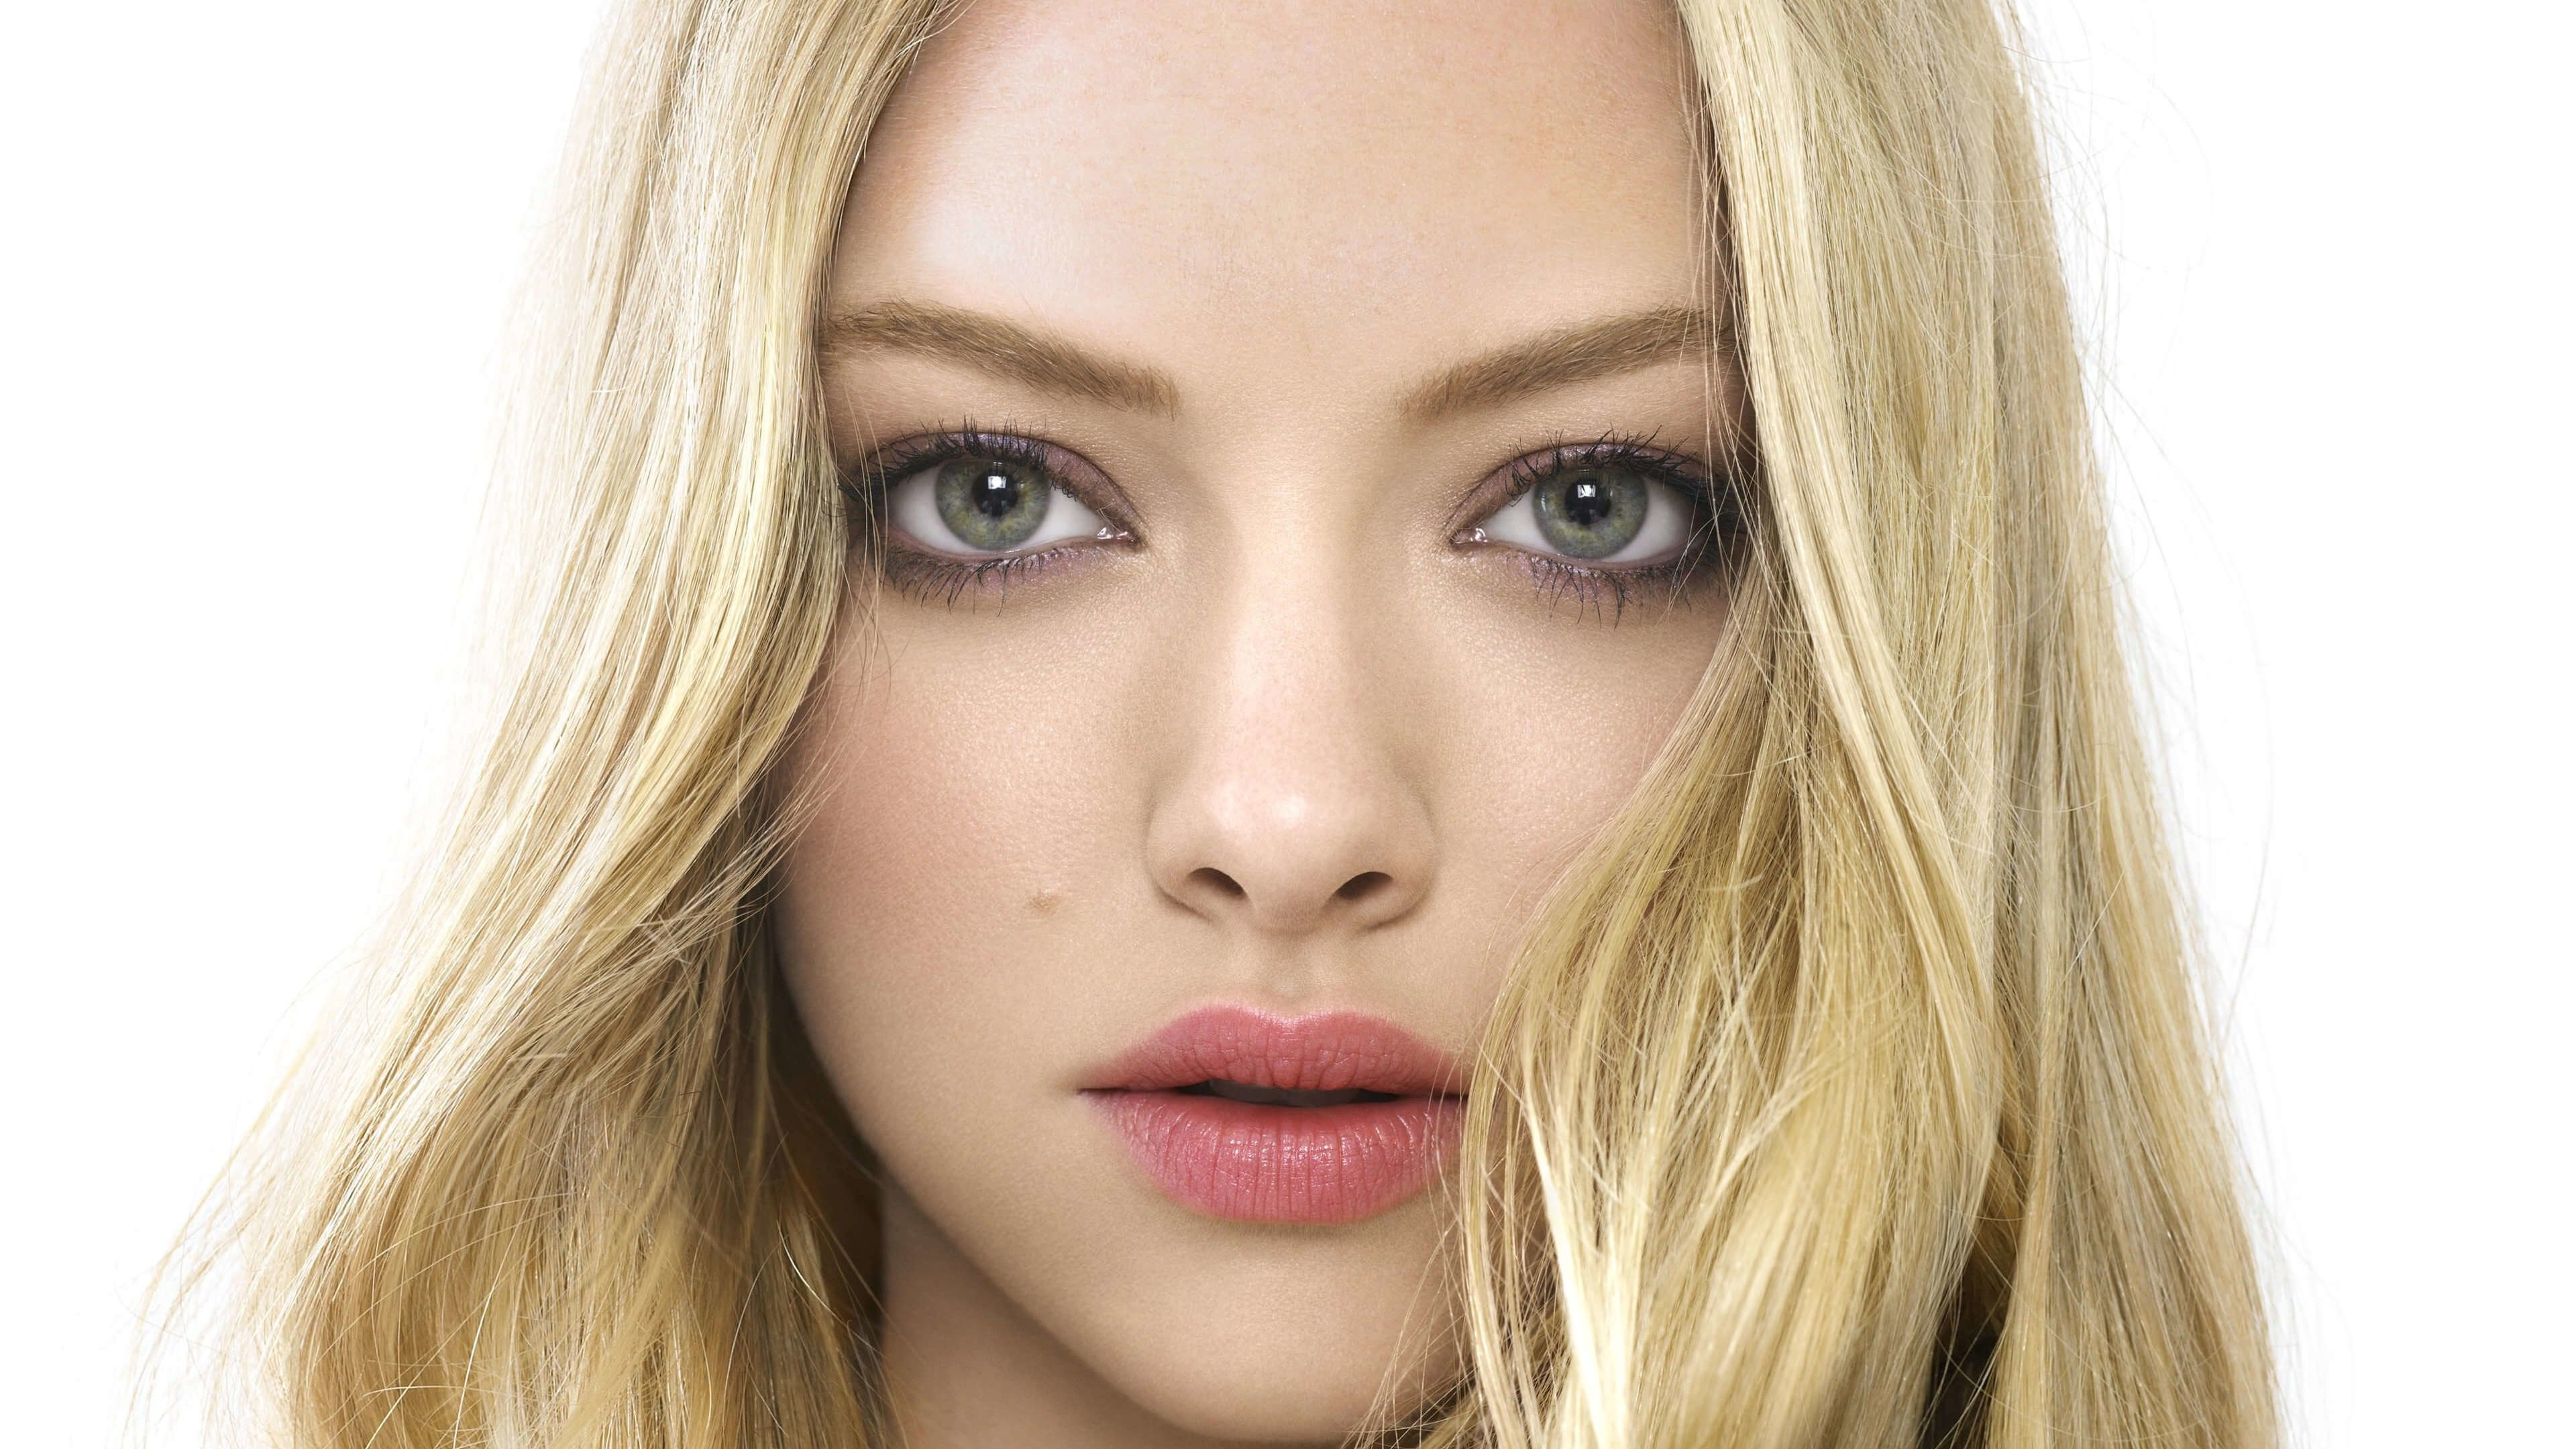 Amanda Seyfried Portrait Wallpaper for Desktop 4K 3840x2160